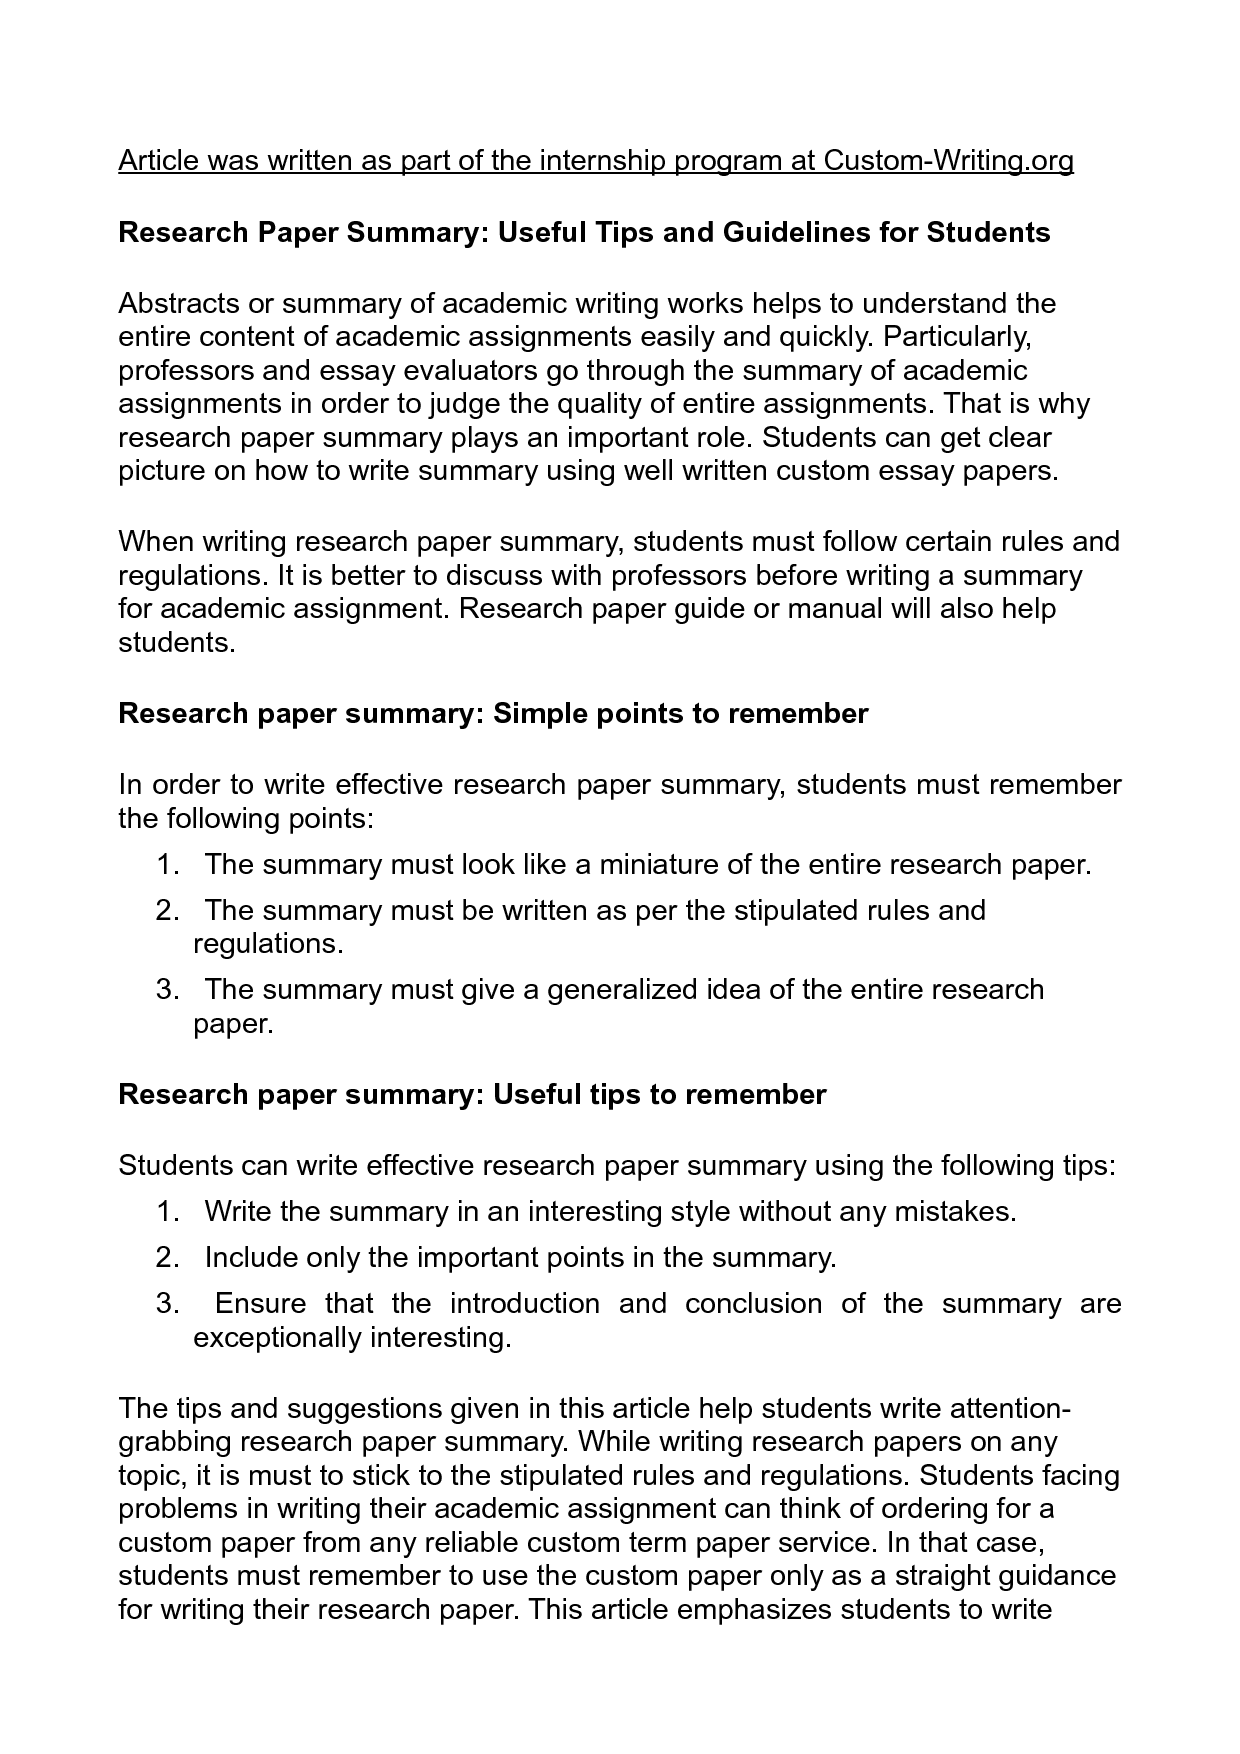 006 Essay Example Adhd Research Papers Brain Scan College About Writing Paper Summary 5 Impressive Conclusion Examples Thesis Statement Full